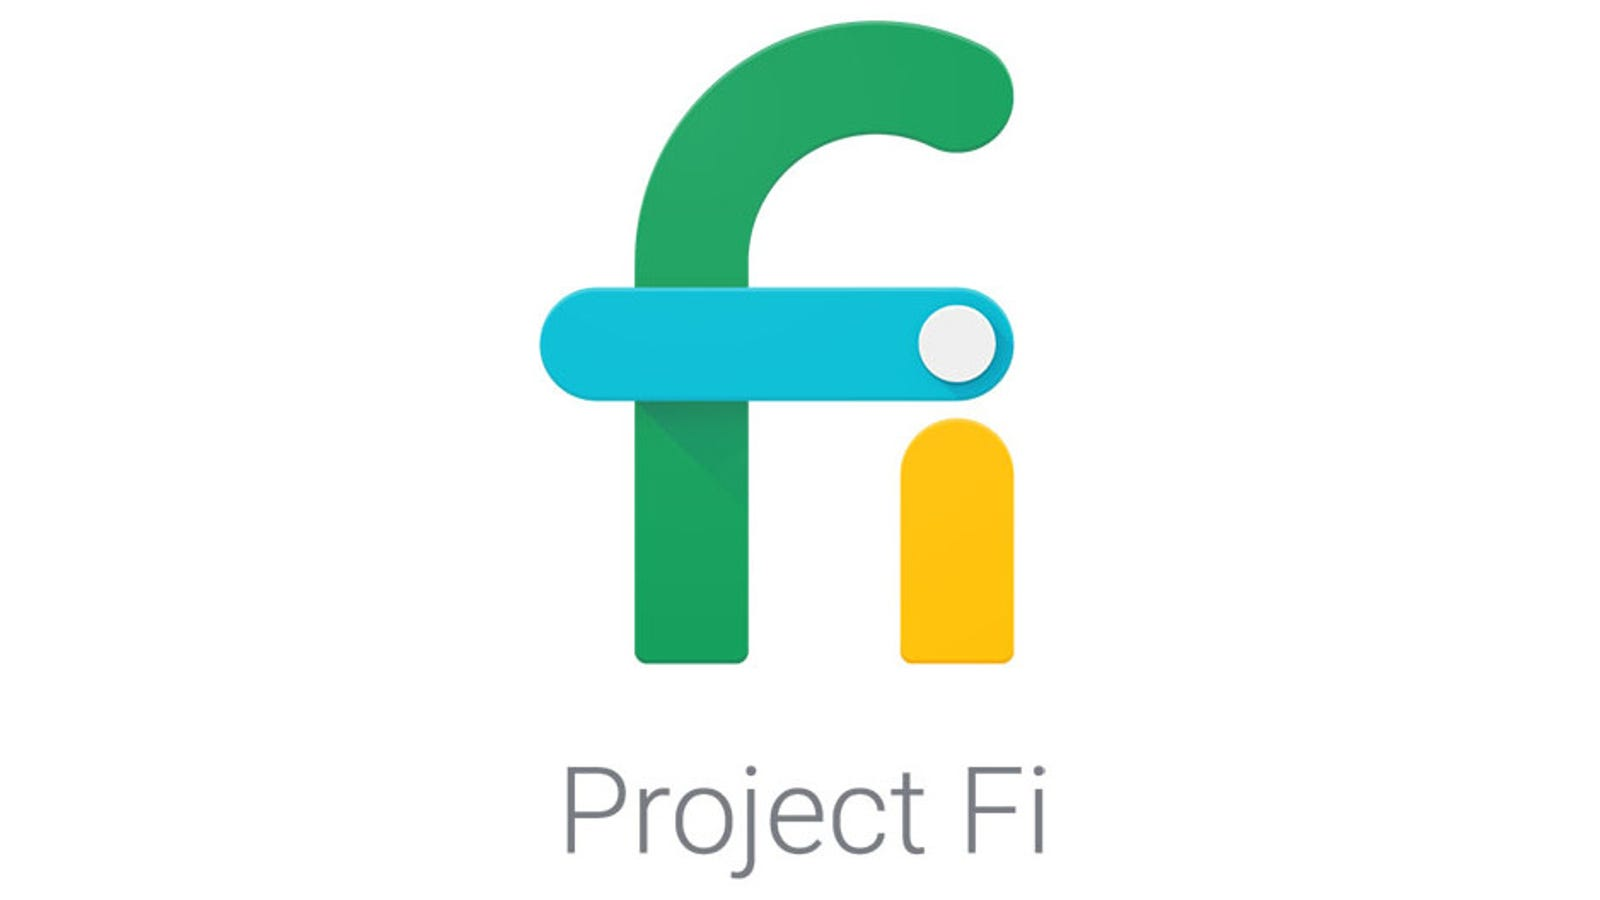 QnA VBage Enable Project Fi's New VPN to Hide Your Mobile Browsing